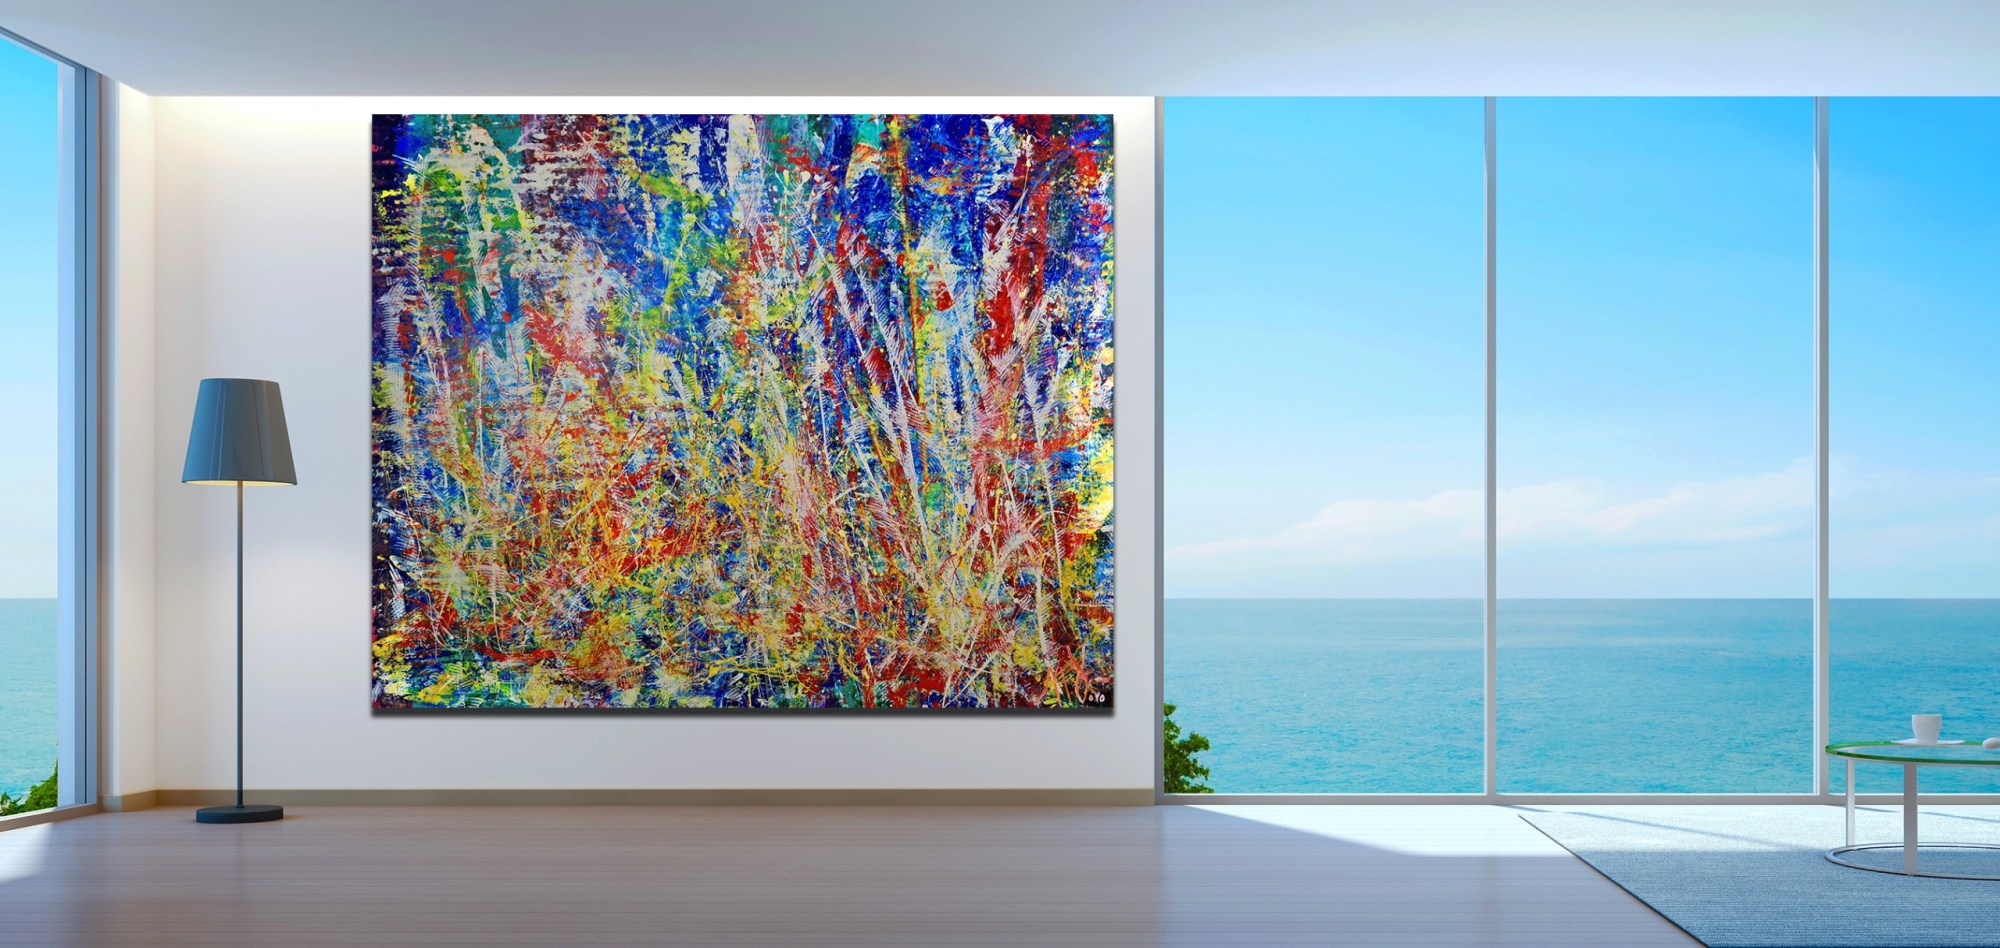 Room View - Infinite Dimensions 1 by Nestor Toro